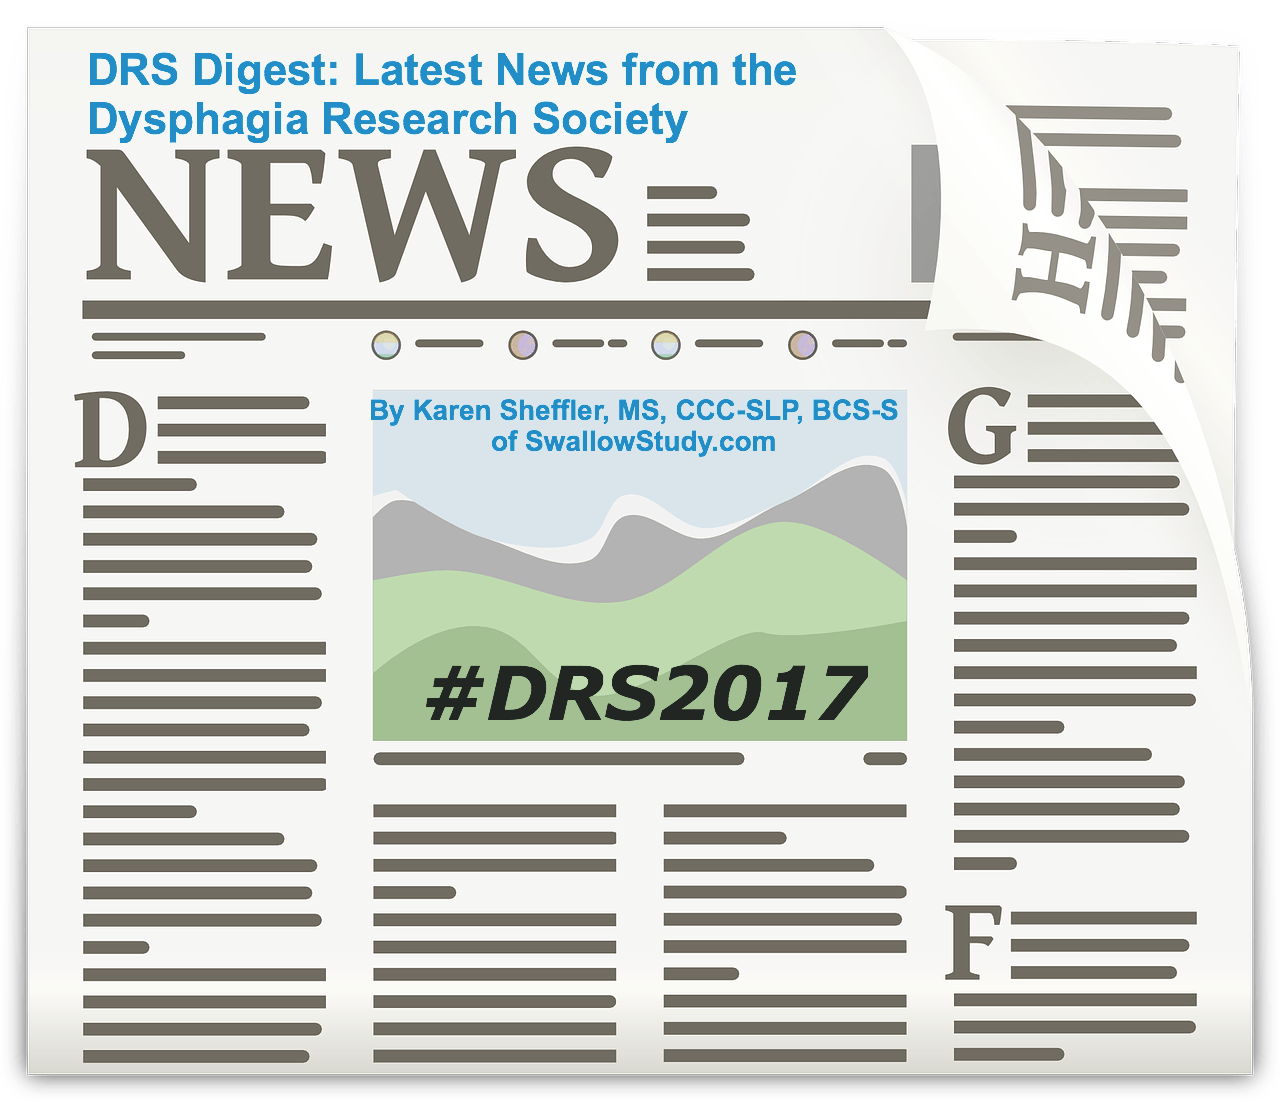 DRS Digest 2017: news from the March 1-4, 2017 annual meeting of the Dysphagia Research Society. Held in Portland, OR.